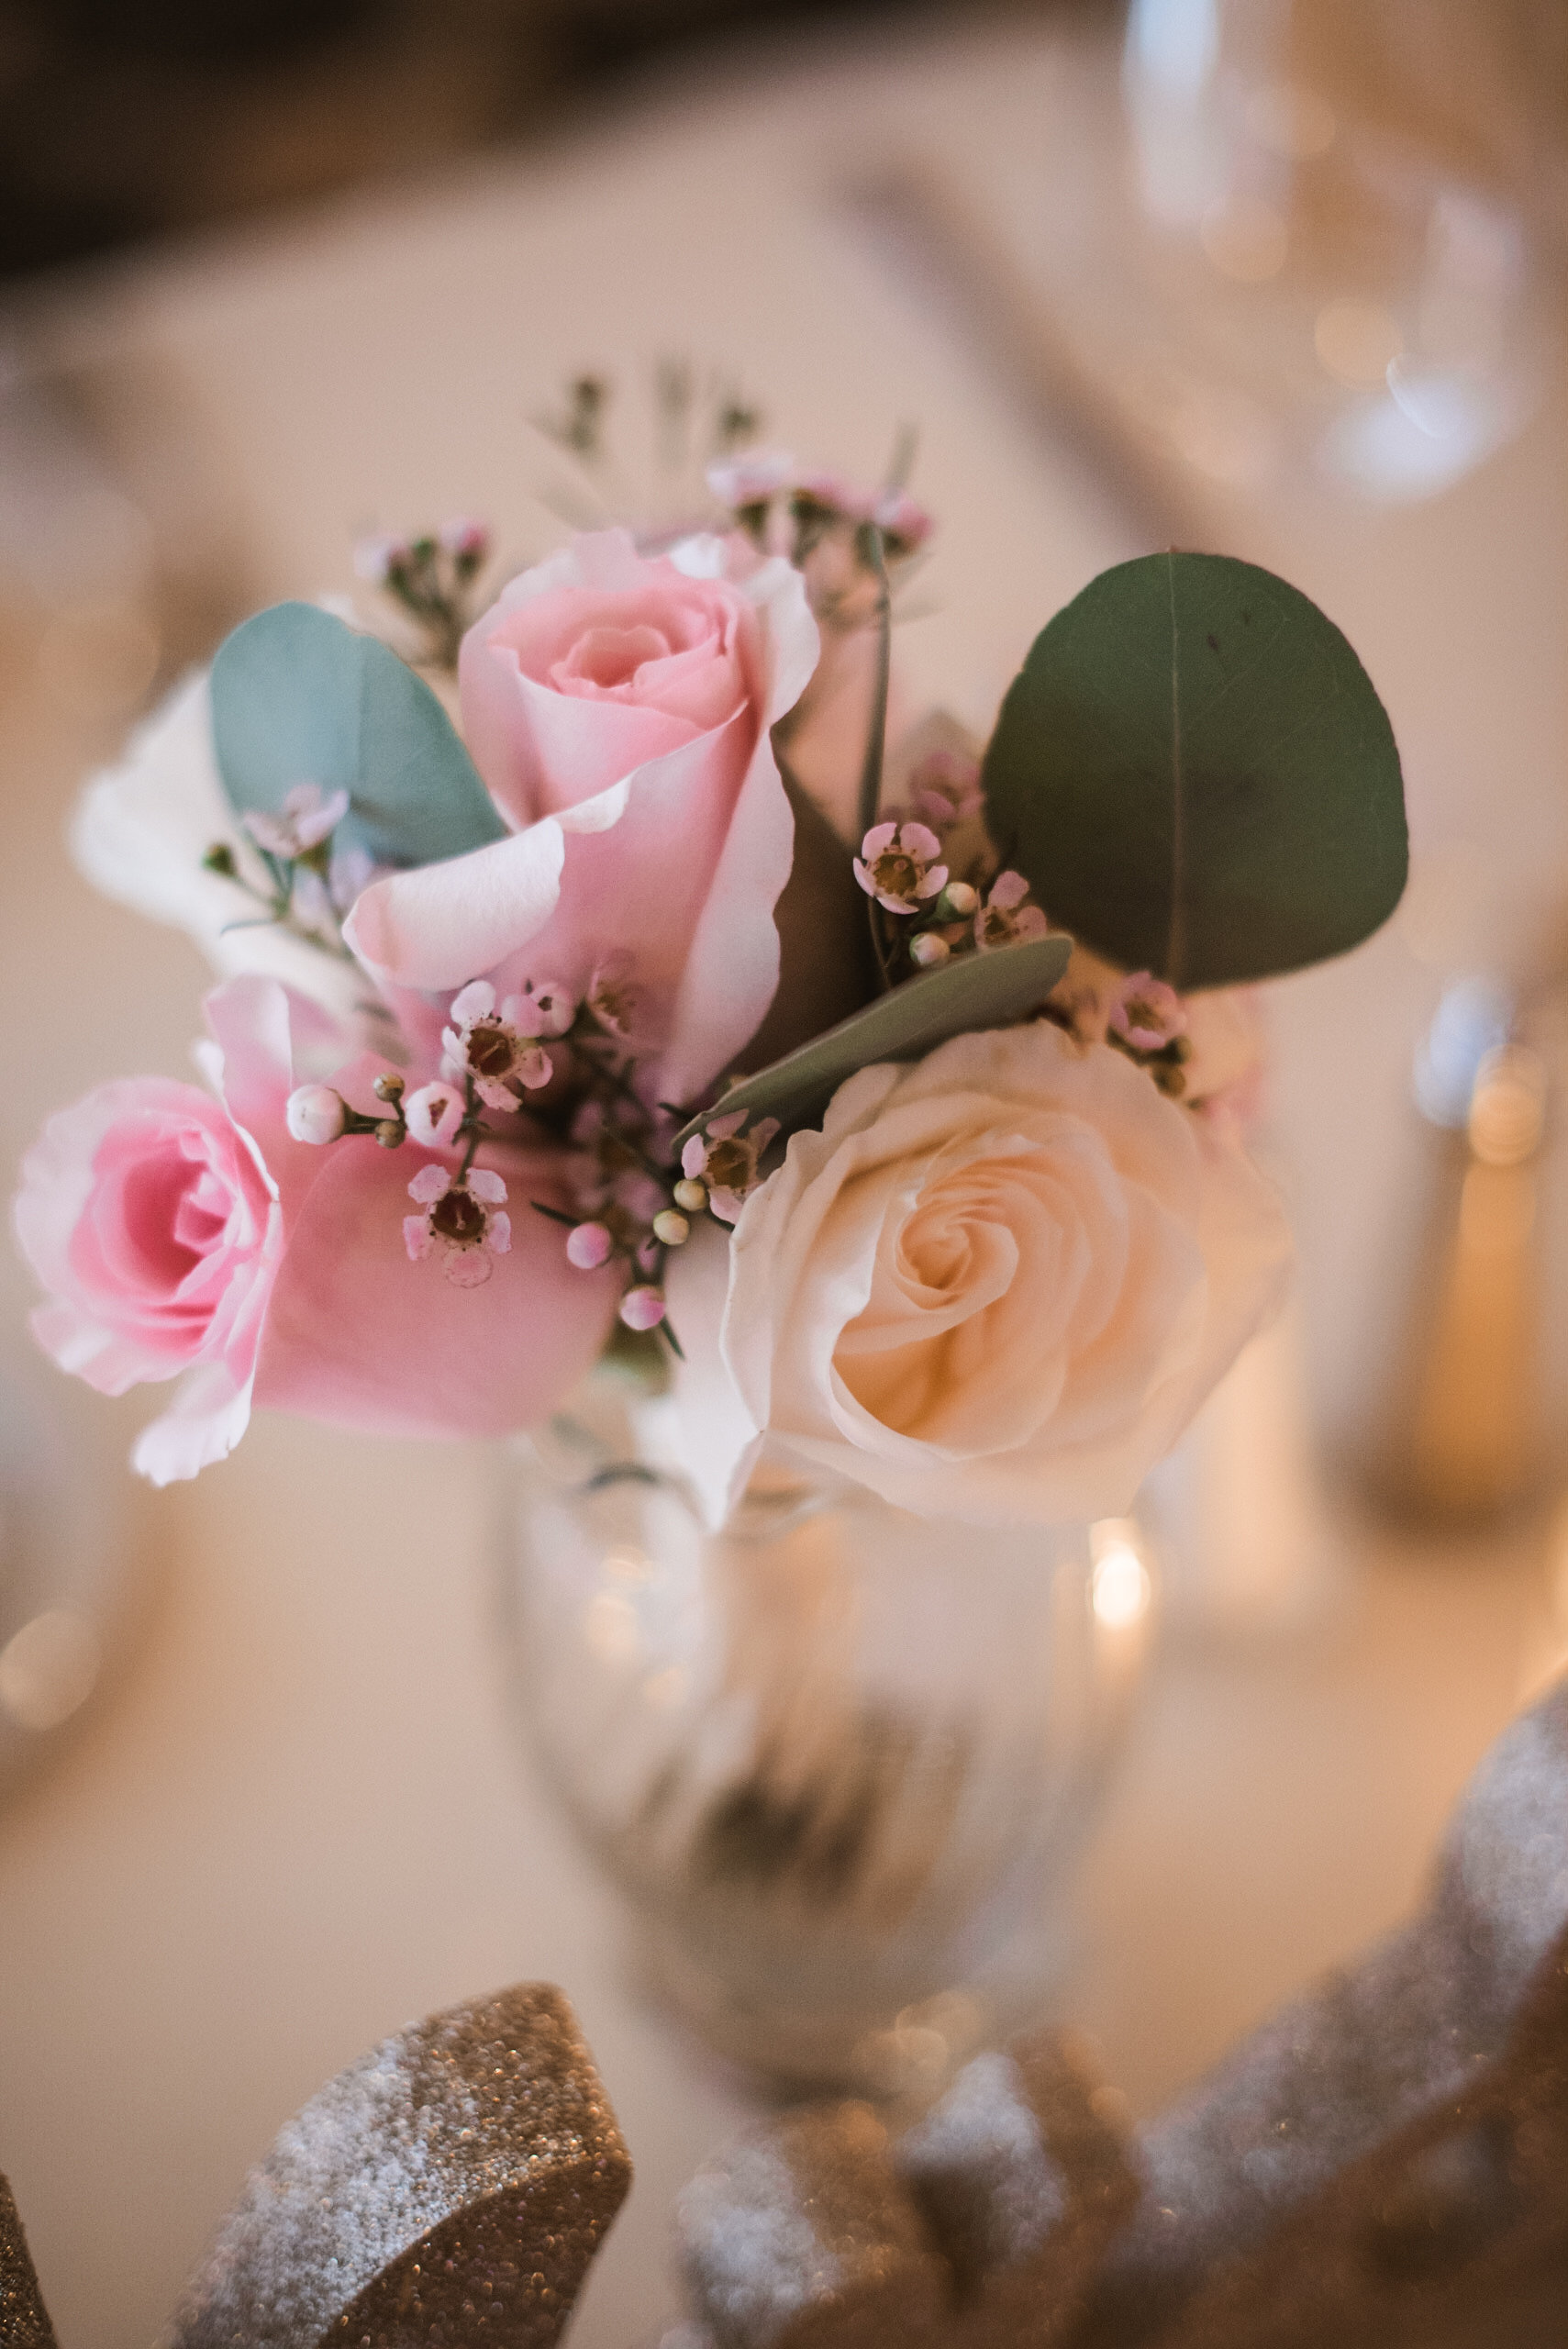 Roses on table at reception